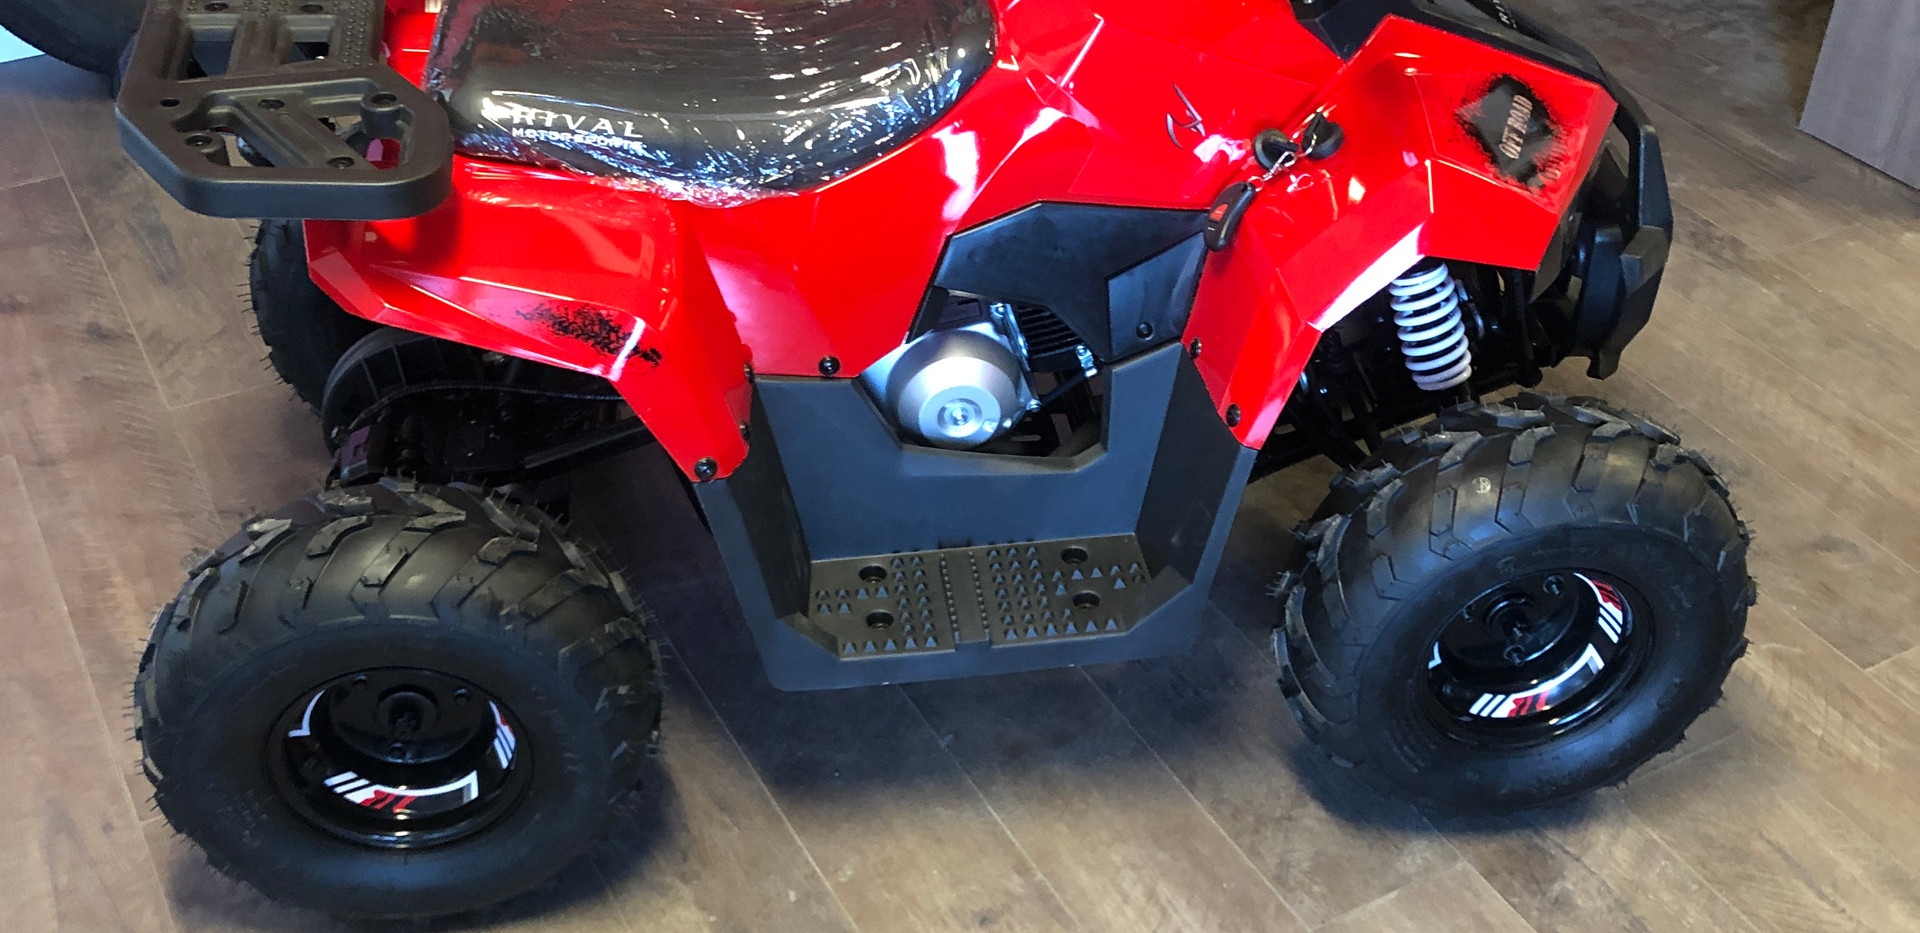 The MudHawk 6 is designed specifically for young riders to start learning the ropes of ATV riding. It's loaded with great features to let your young rider explore and enjoy the outdoors. Supervising adults will love the MudHawk 6's safety features like Wireless Engine Shut Off and the throttle limiter.